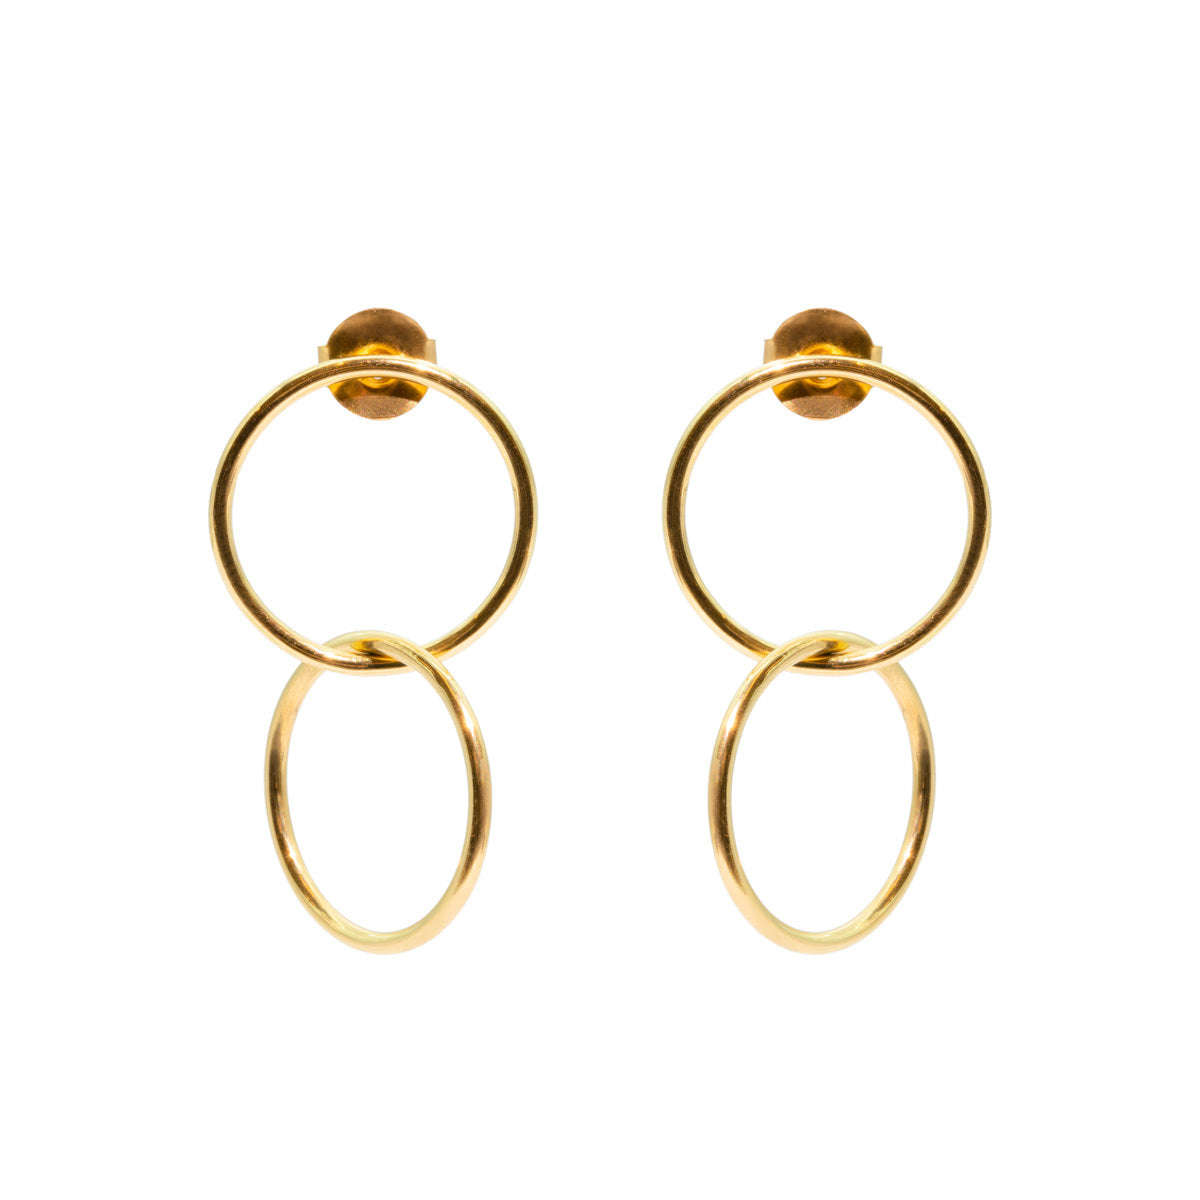 The Gold Full Circle Earrings